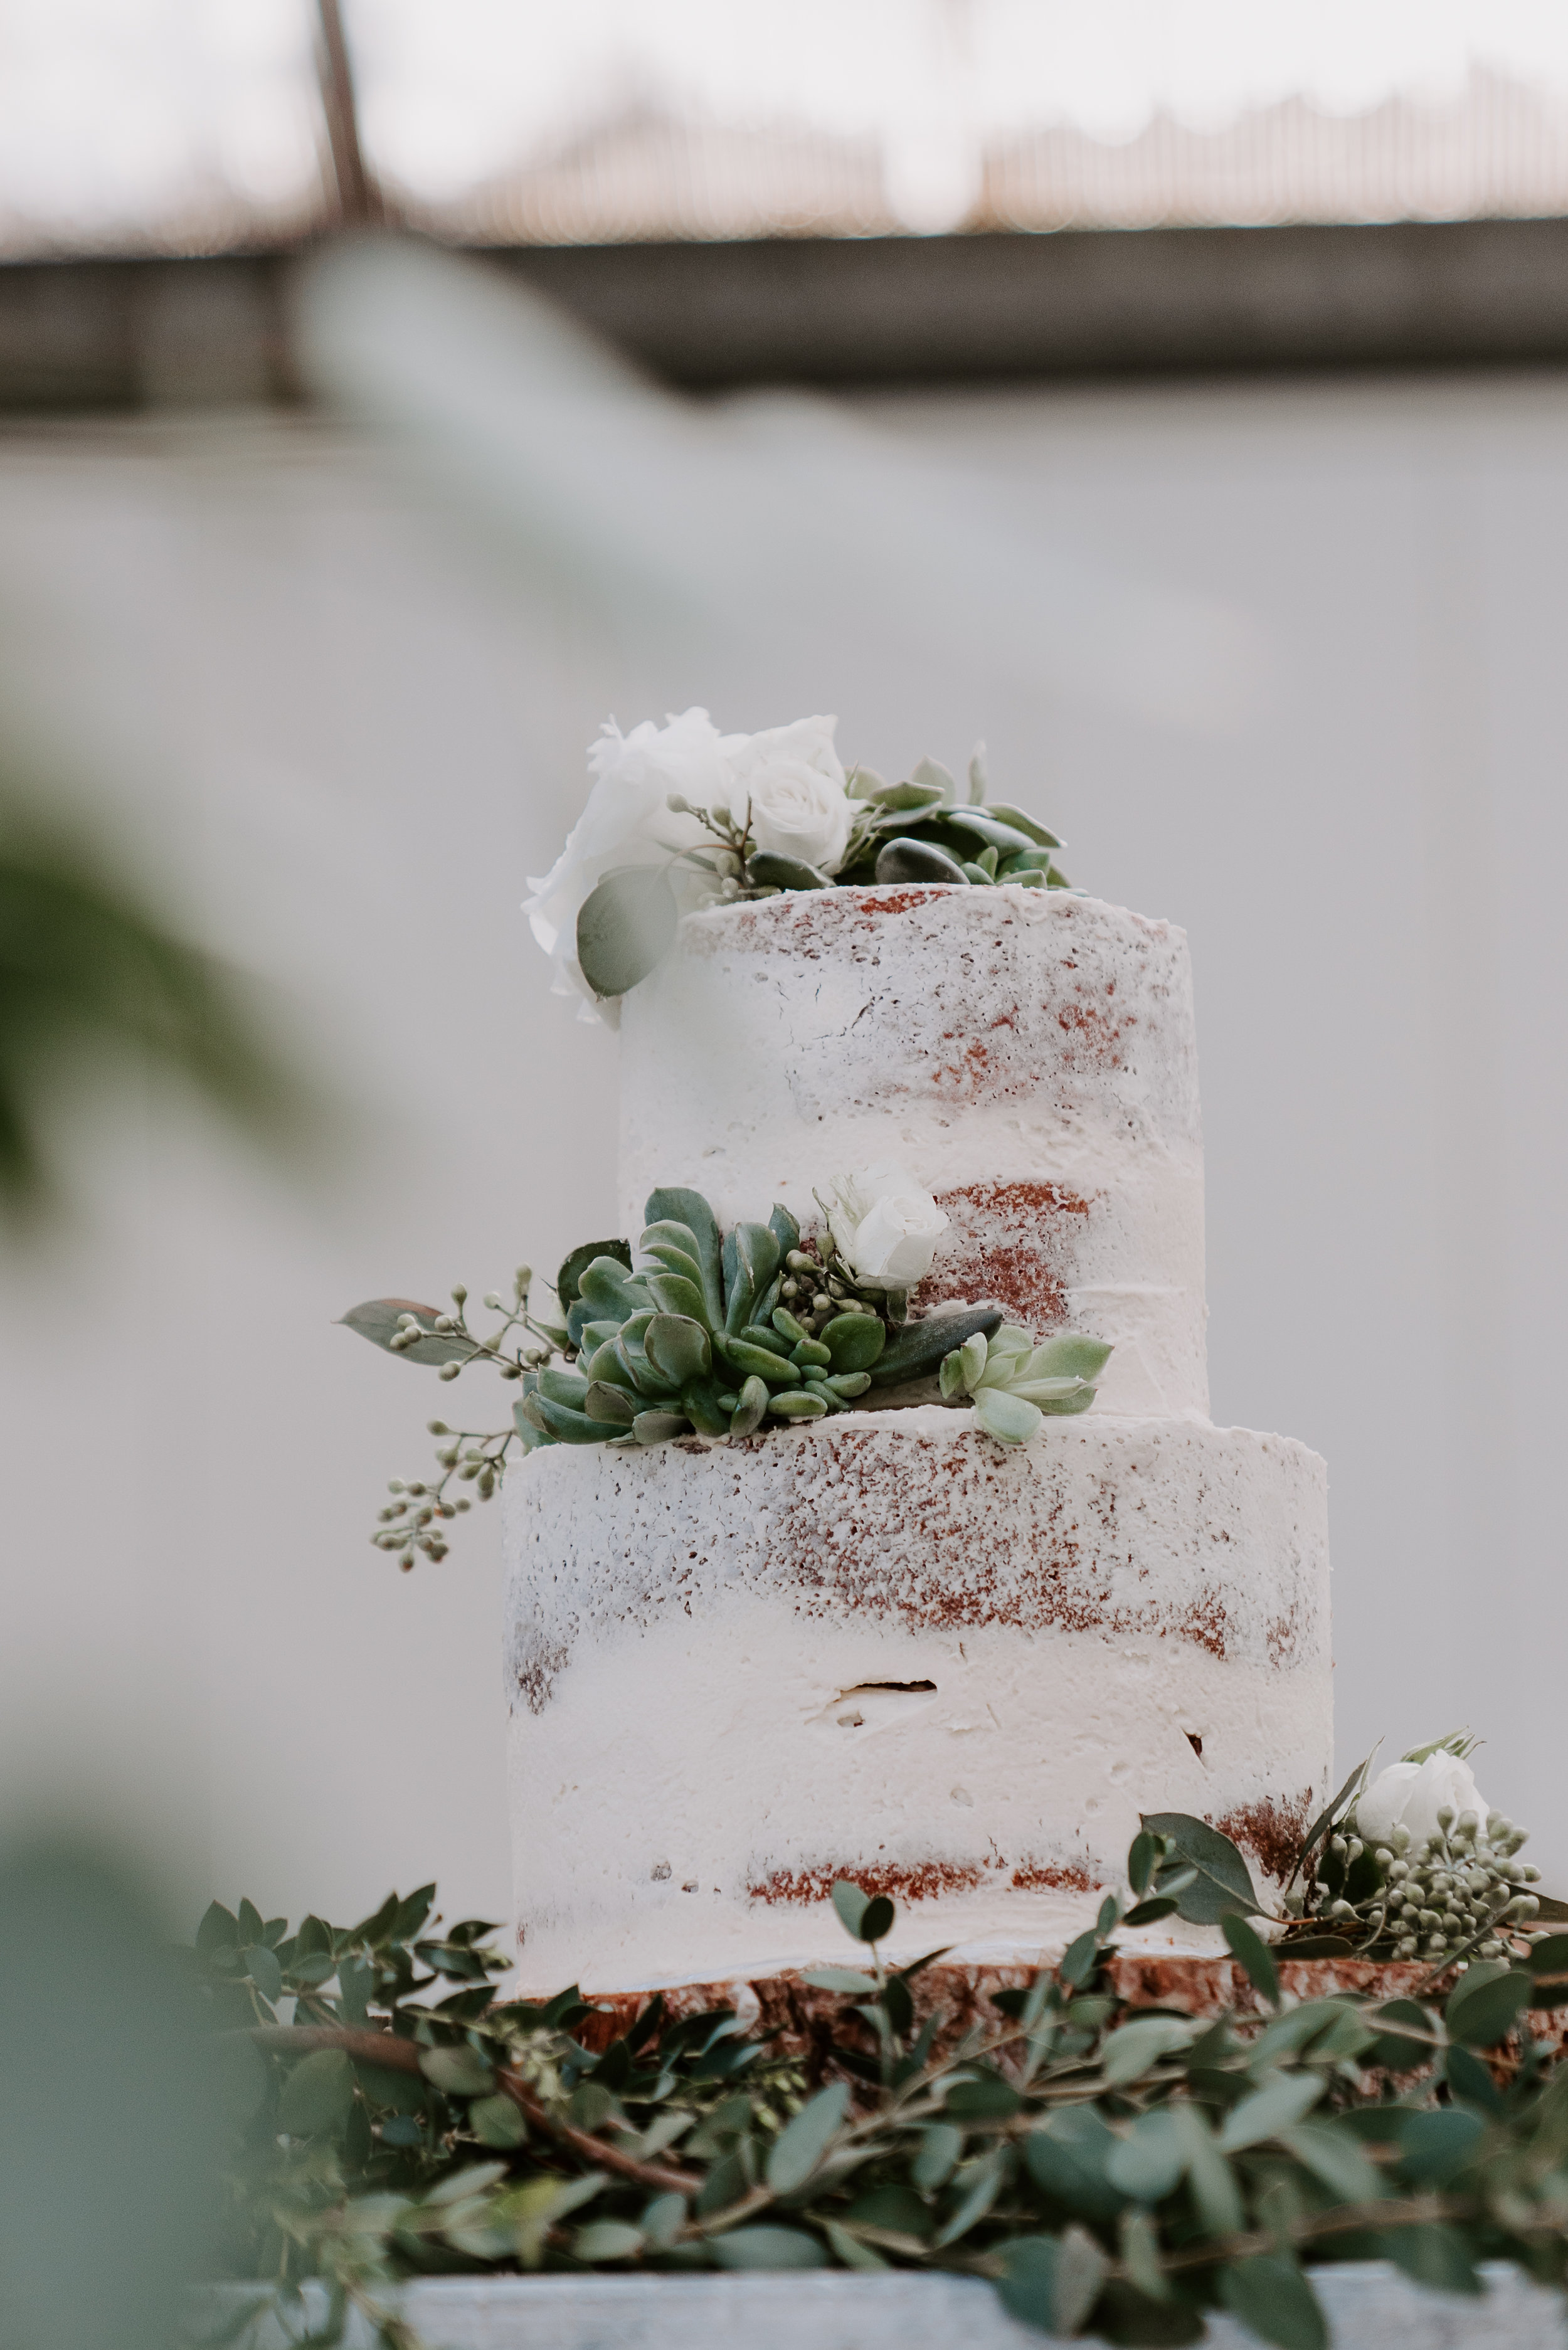 WEDDINGS - In - State Weddings:$1,250: Engagements, Bridals, 5-hour Wedding Day Coverage$1,375: Engagements, Bridals, 6-hour Wedding Day Coverage*A-la-carte is $175 for every hour on Wedding DayOut of State Weddings:Starting at $2,000(Rates are influenced by travel & hotel)